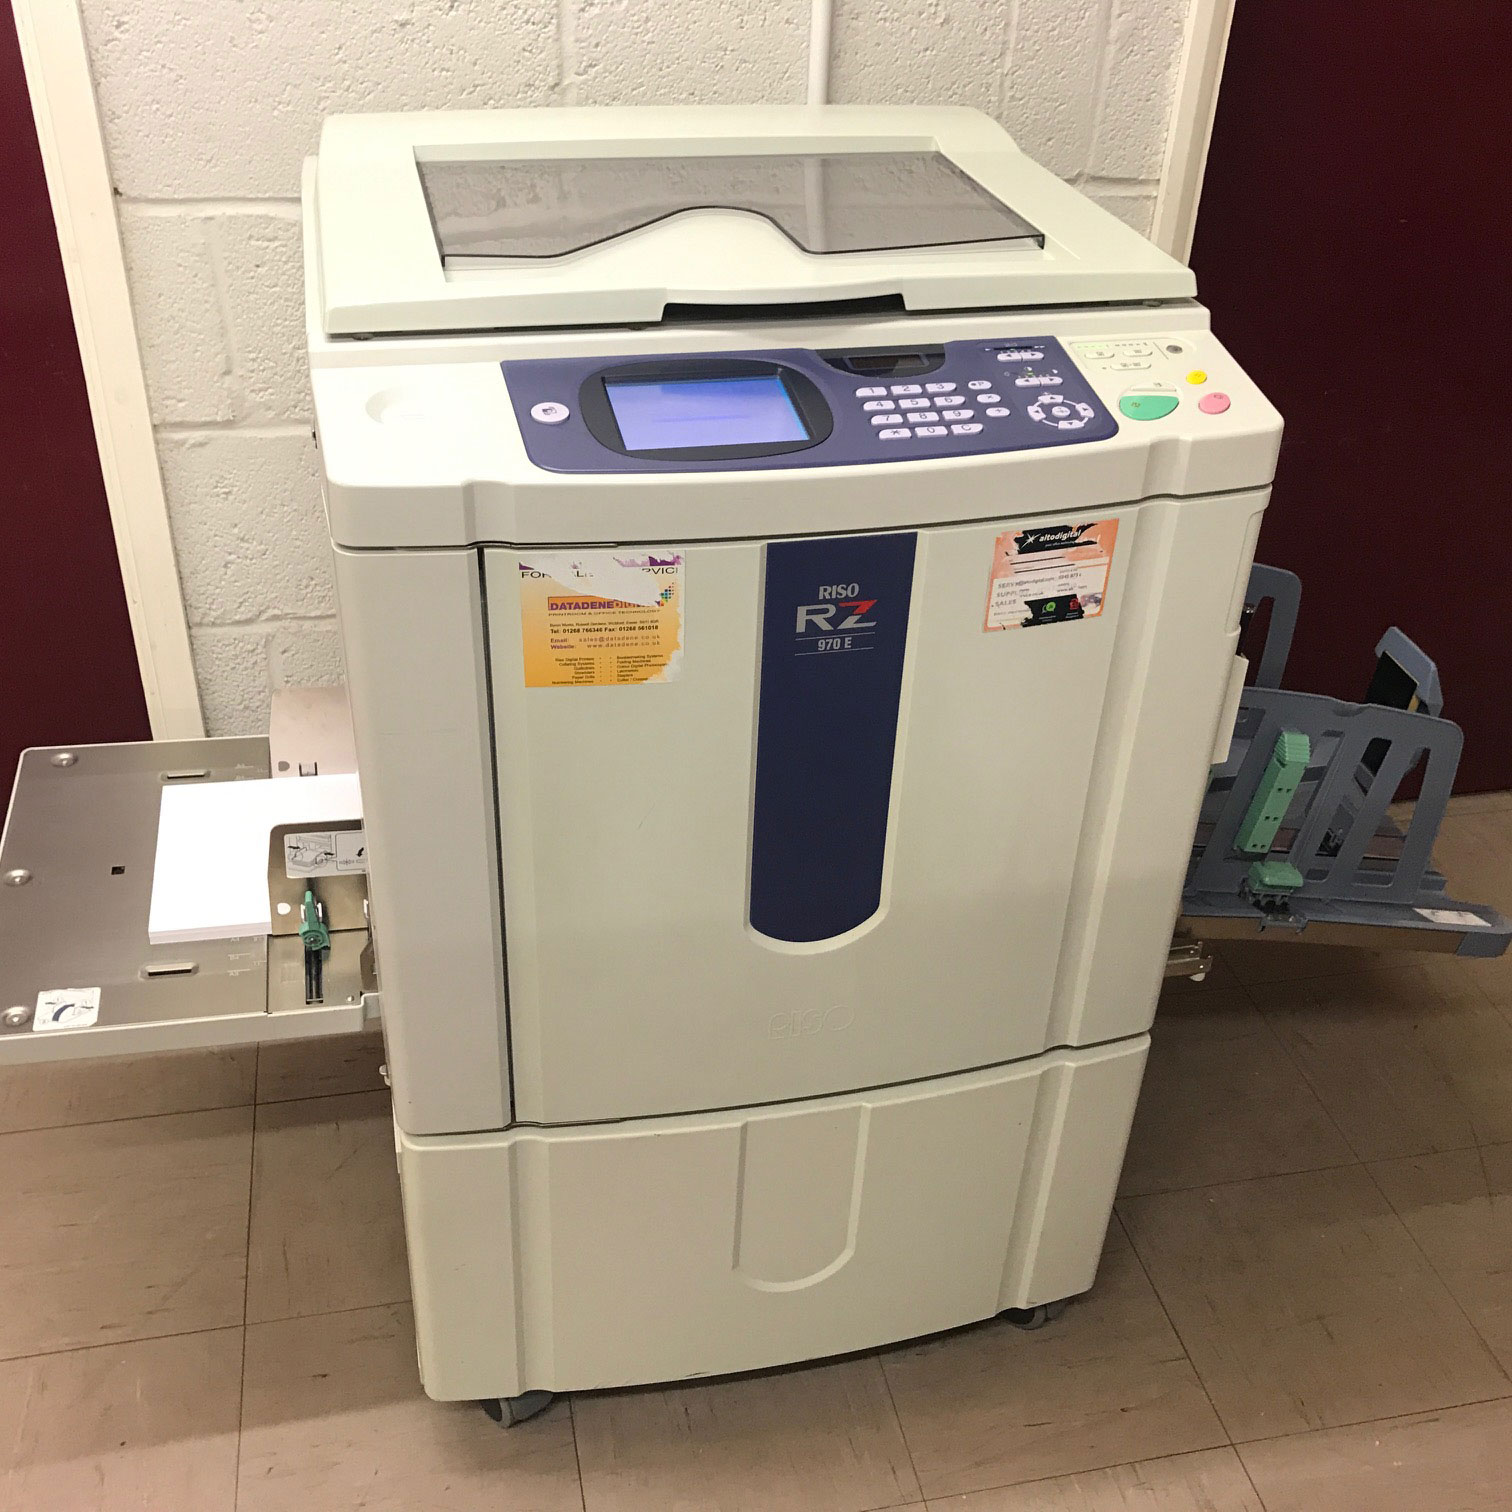 Pre-used Riso RZ 970E Duplicator Copier Machine